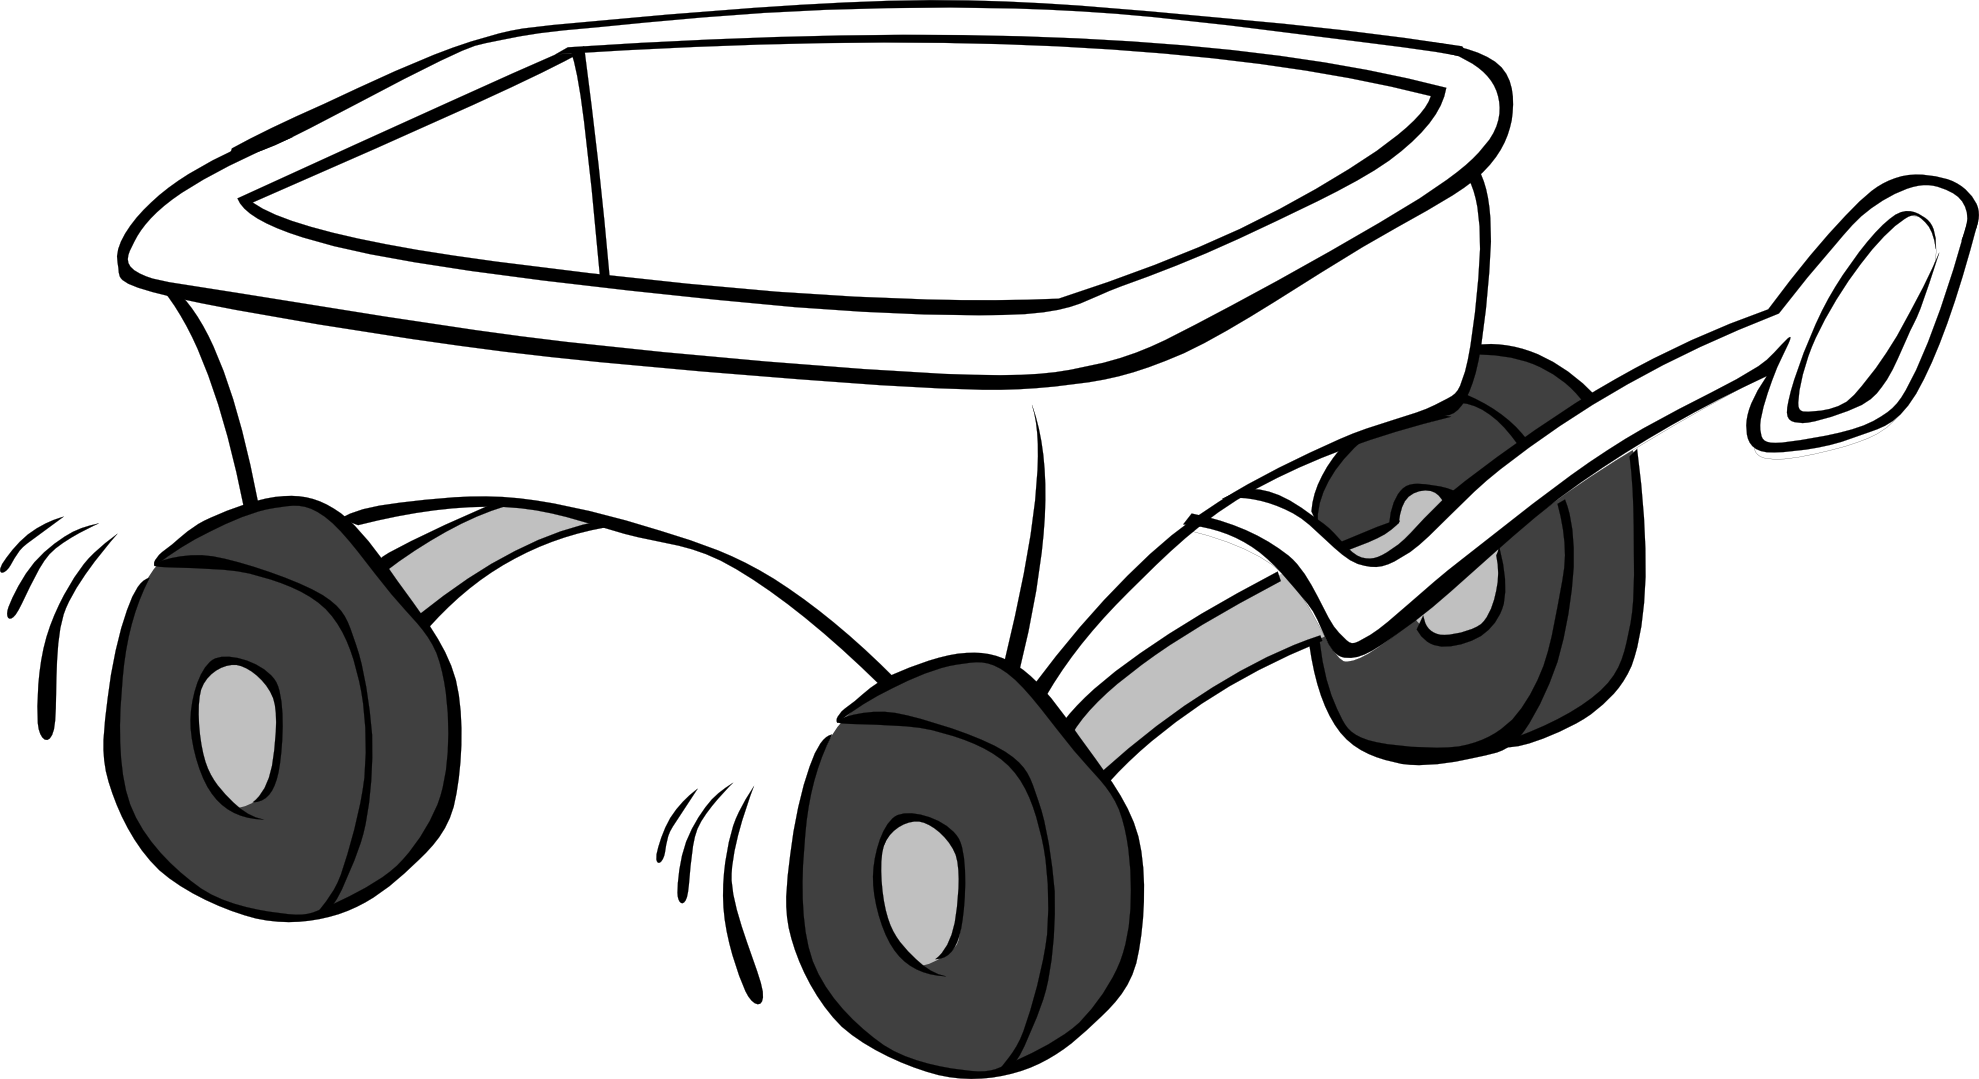 Wagon clipart #10, Download drawings